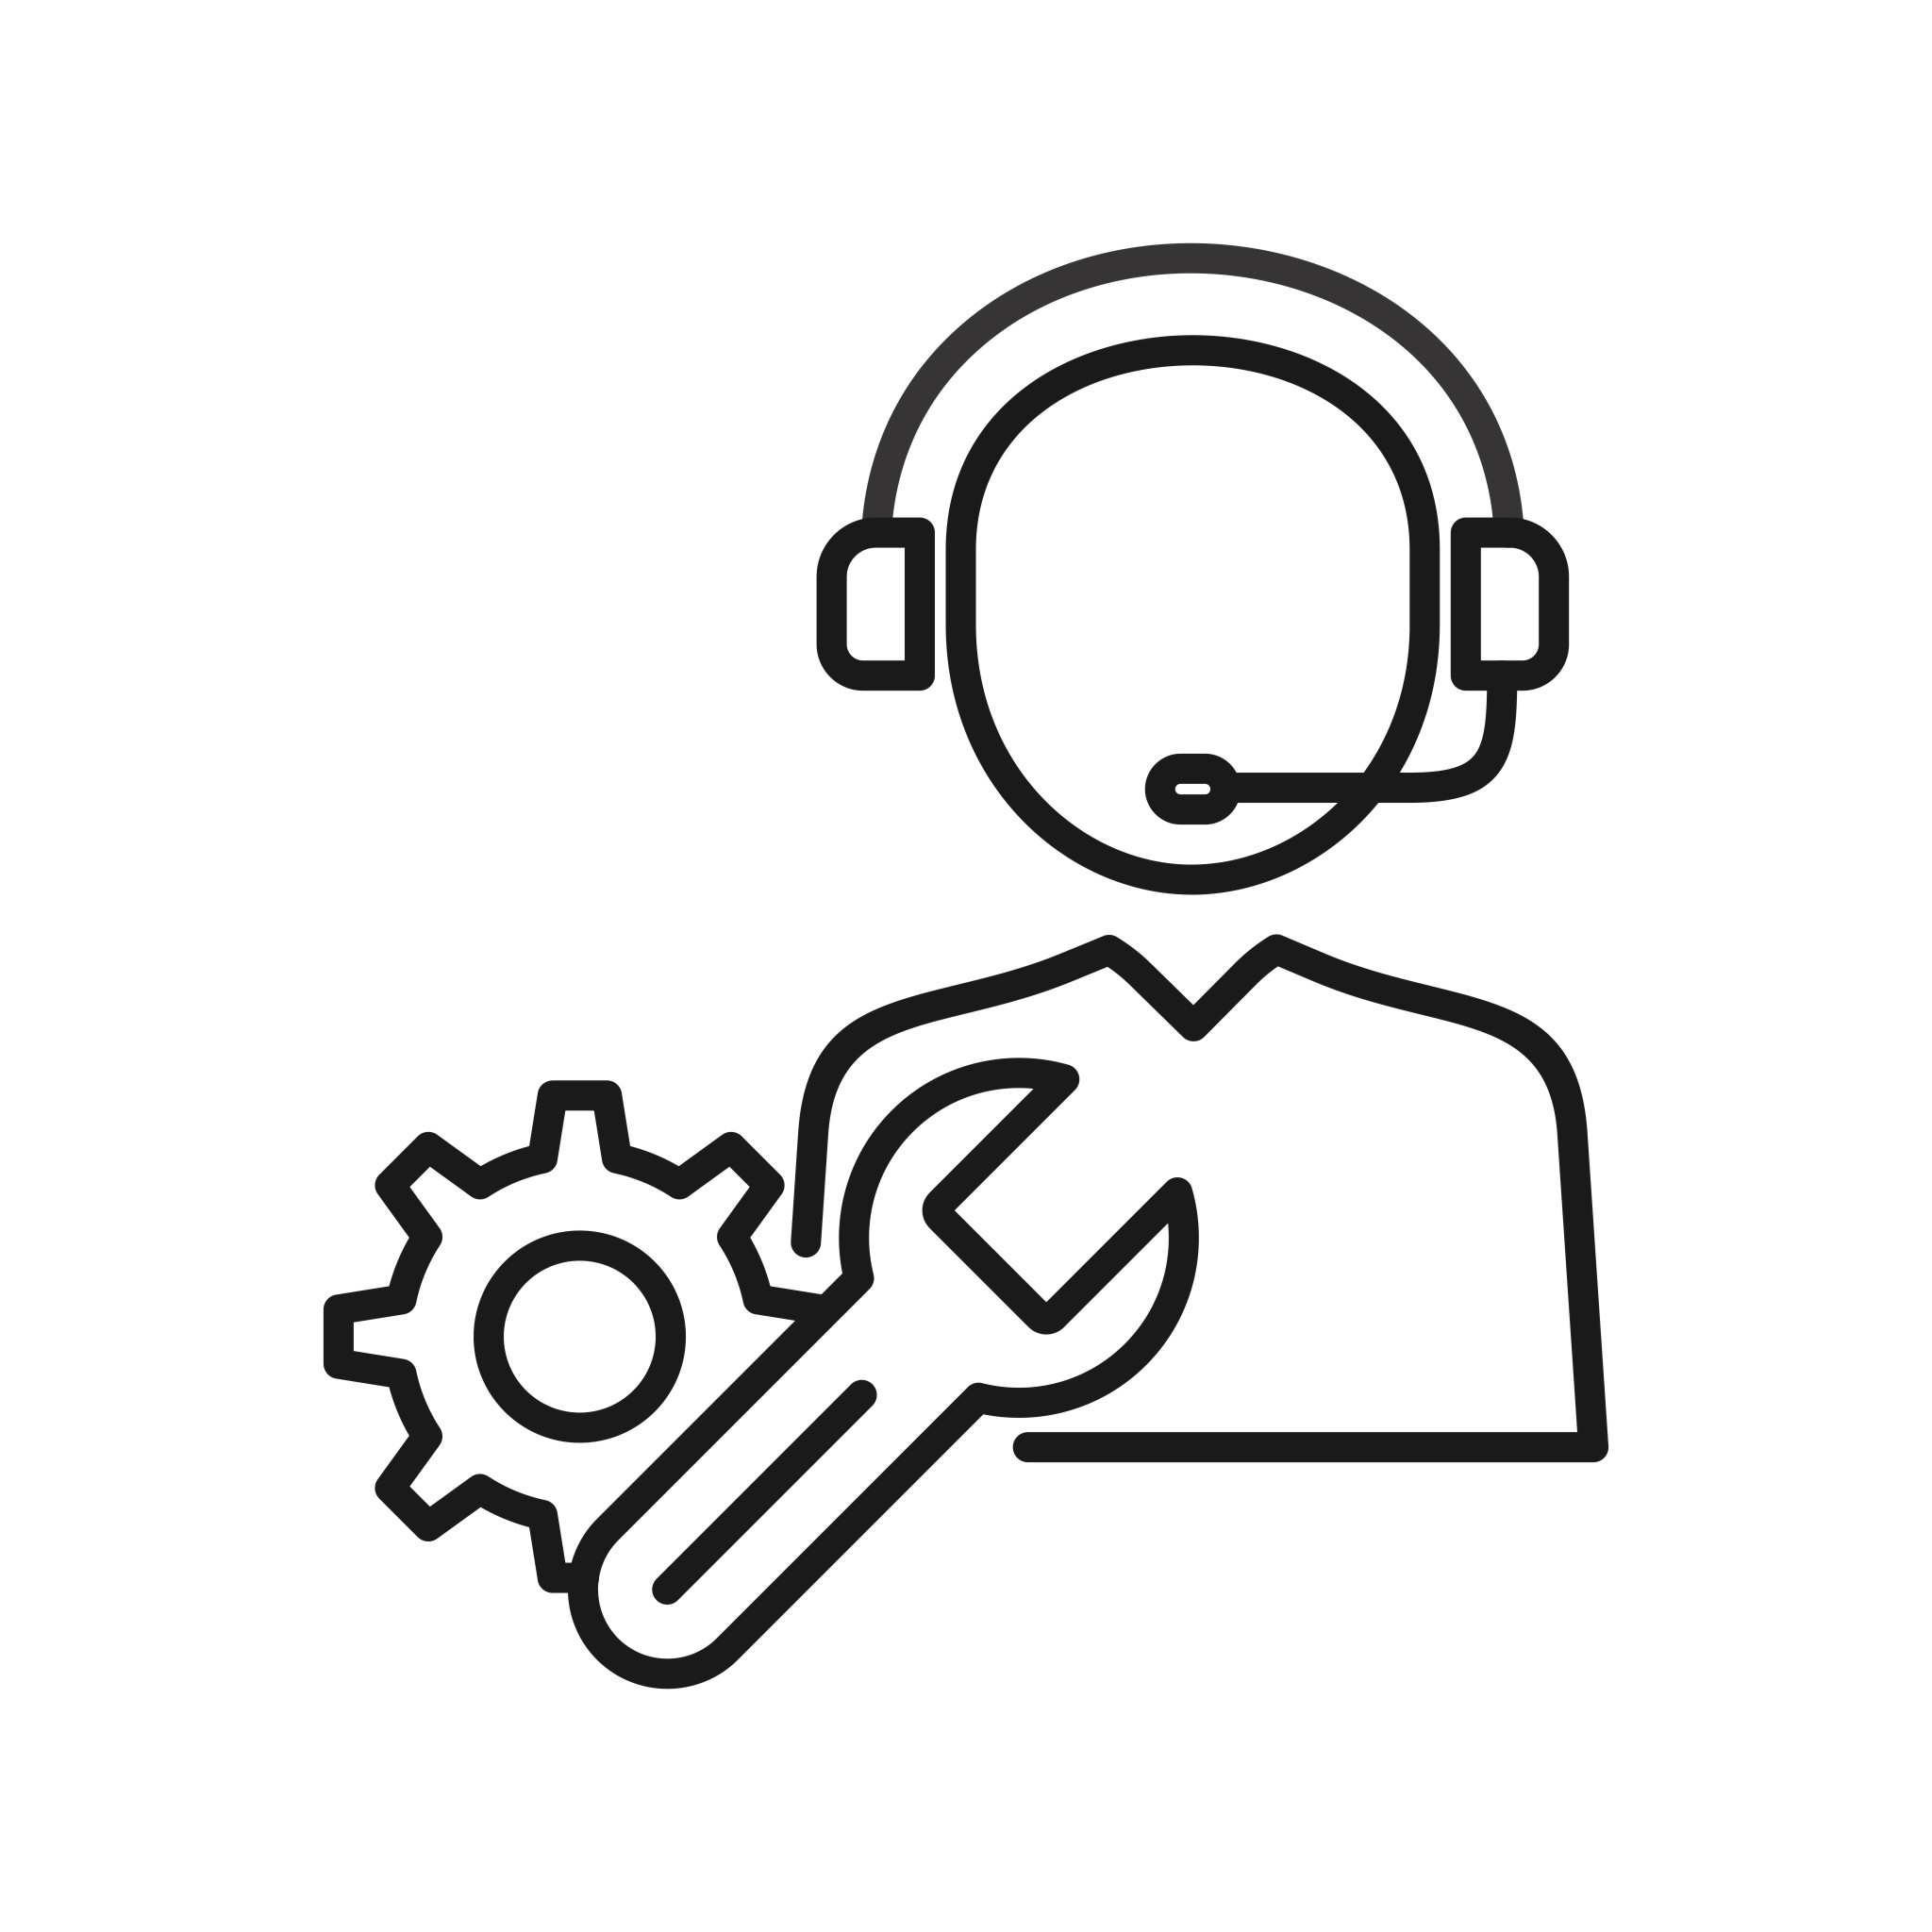 Technical Support Seo Line Icons